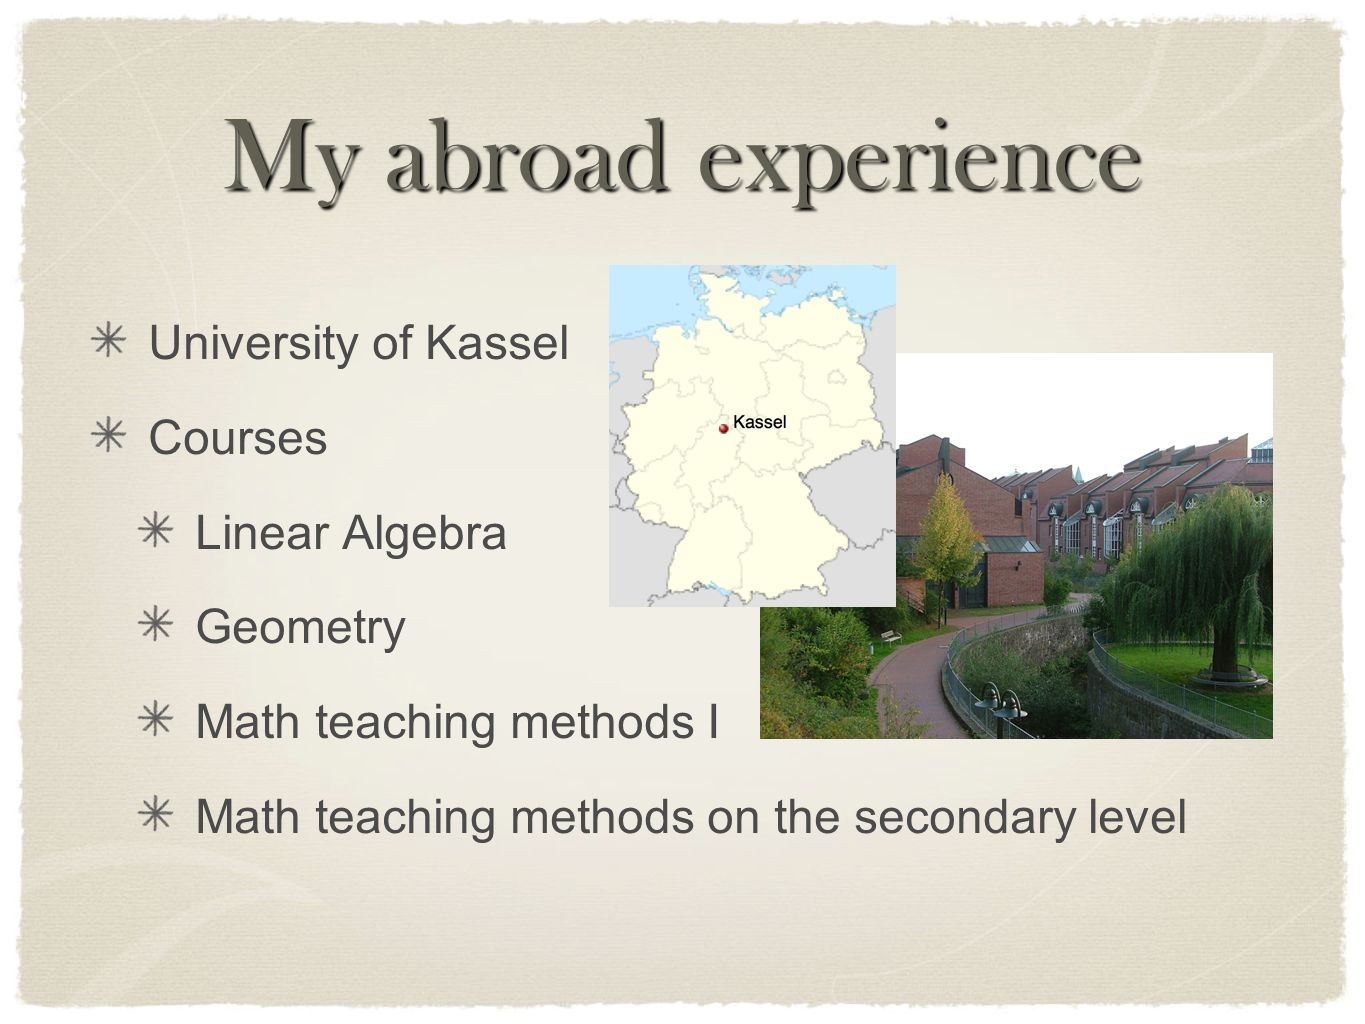 My abroad experience University of Kassel Courses Linear Algebra Geometry Math teaching methods I Math teaching methods on the secondary level